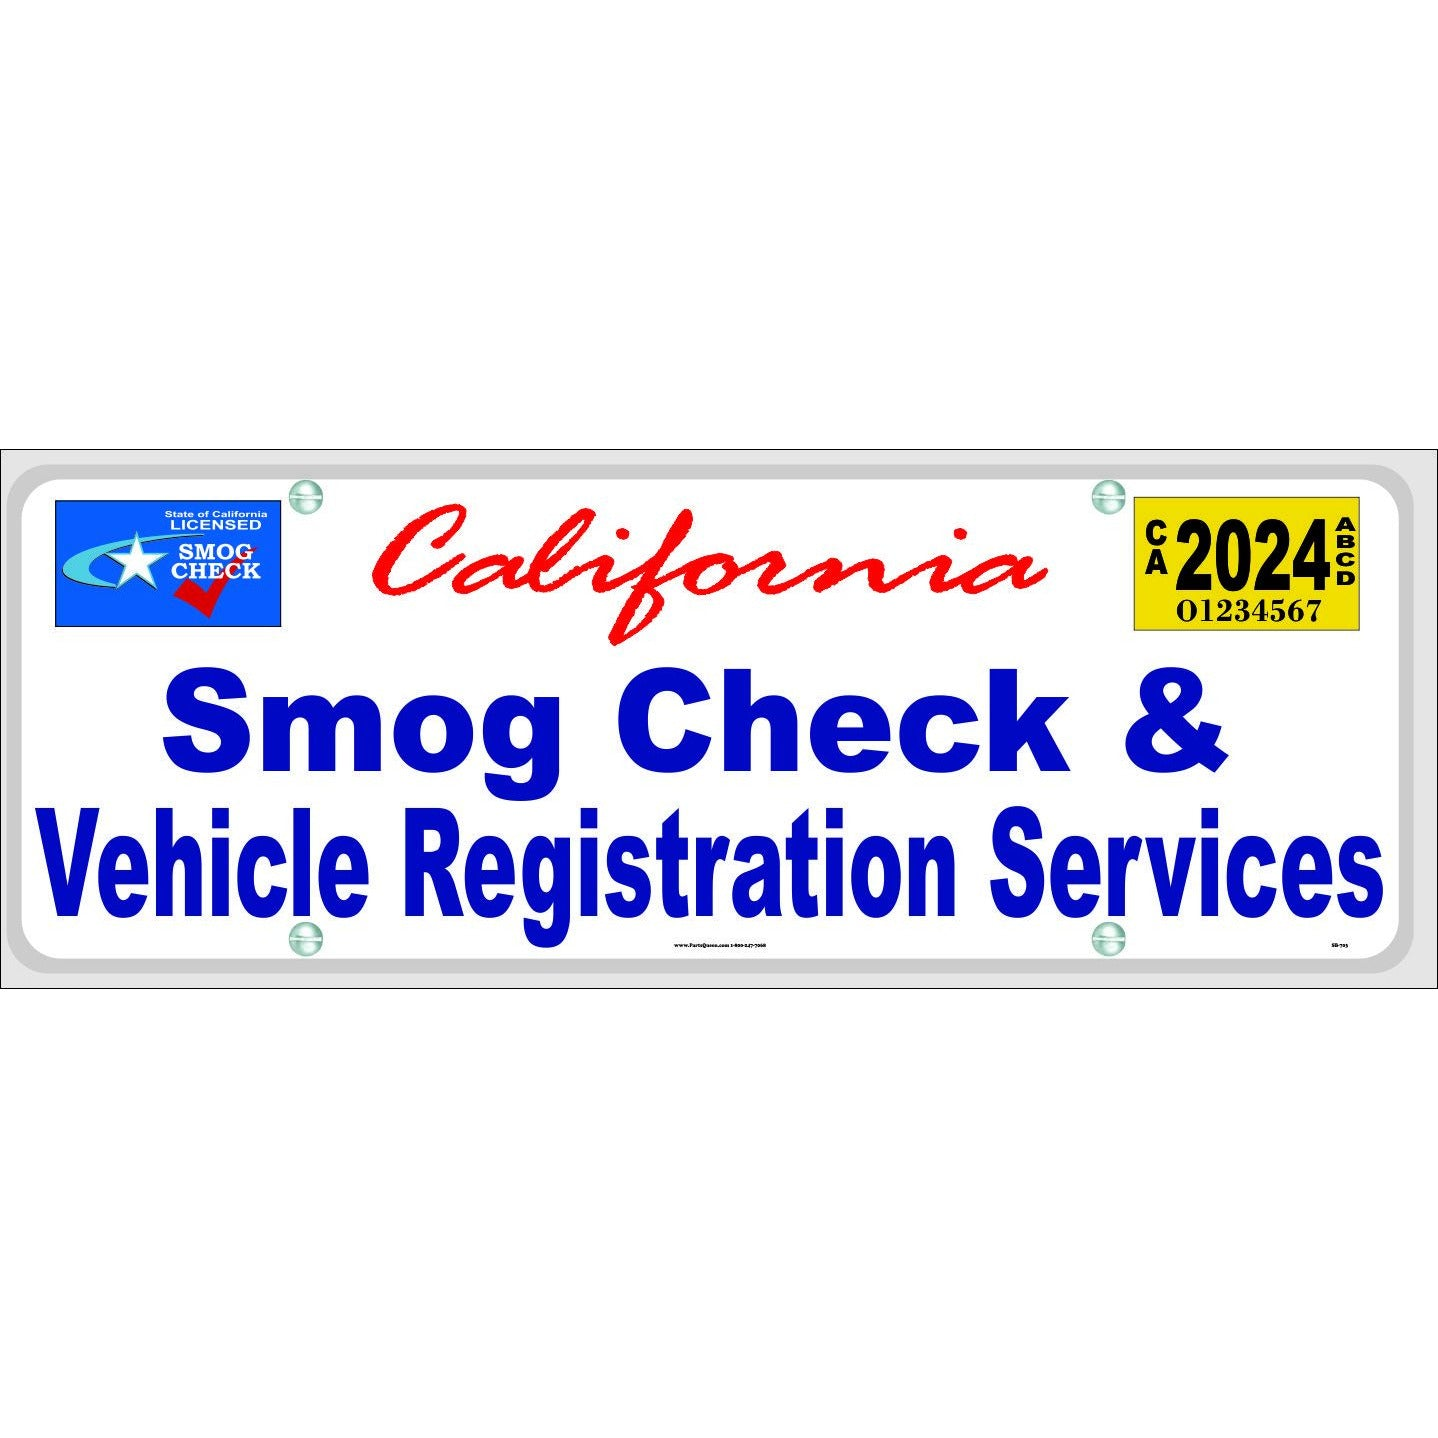 SB-703 SMOG CHECK & VEHICLE REGISTRATION SERVICES